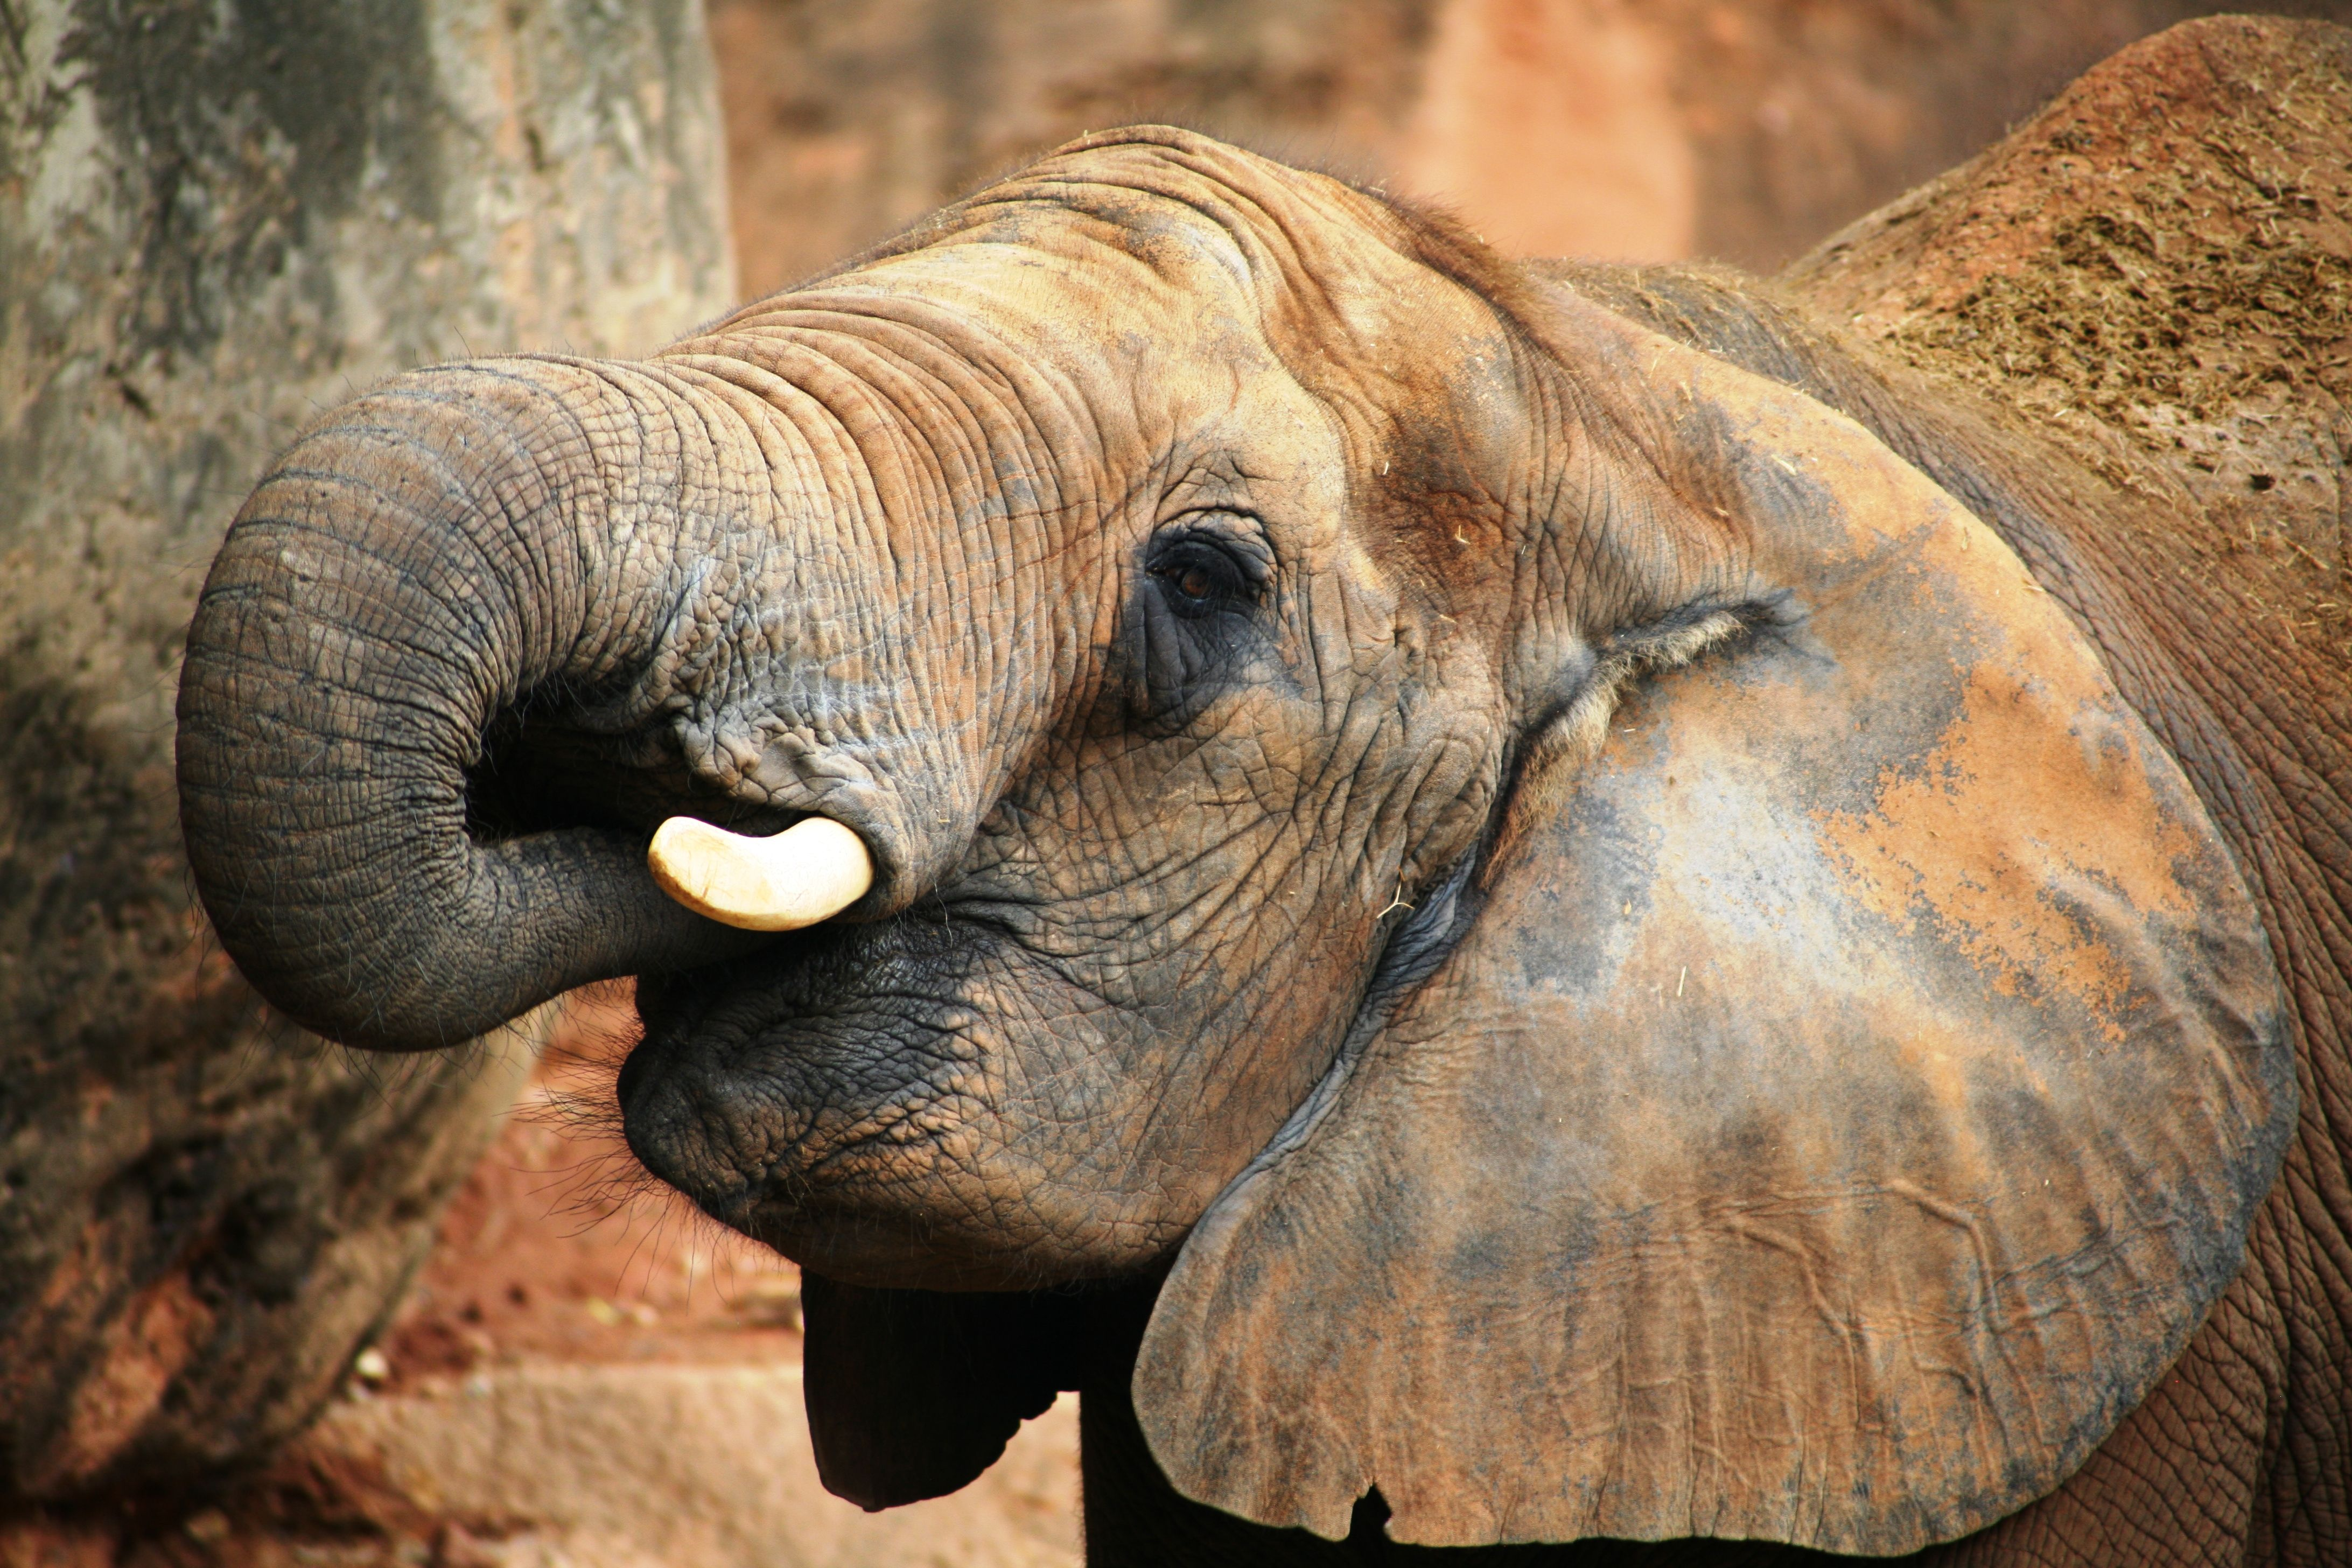 Elephants are often killed to sell their tusks online in a lucrative ivory trade.